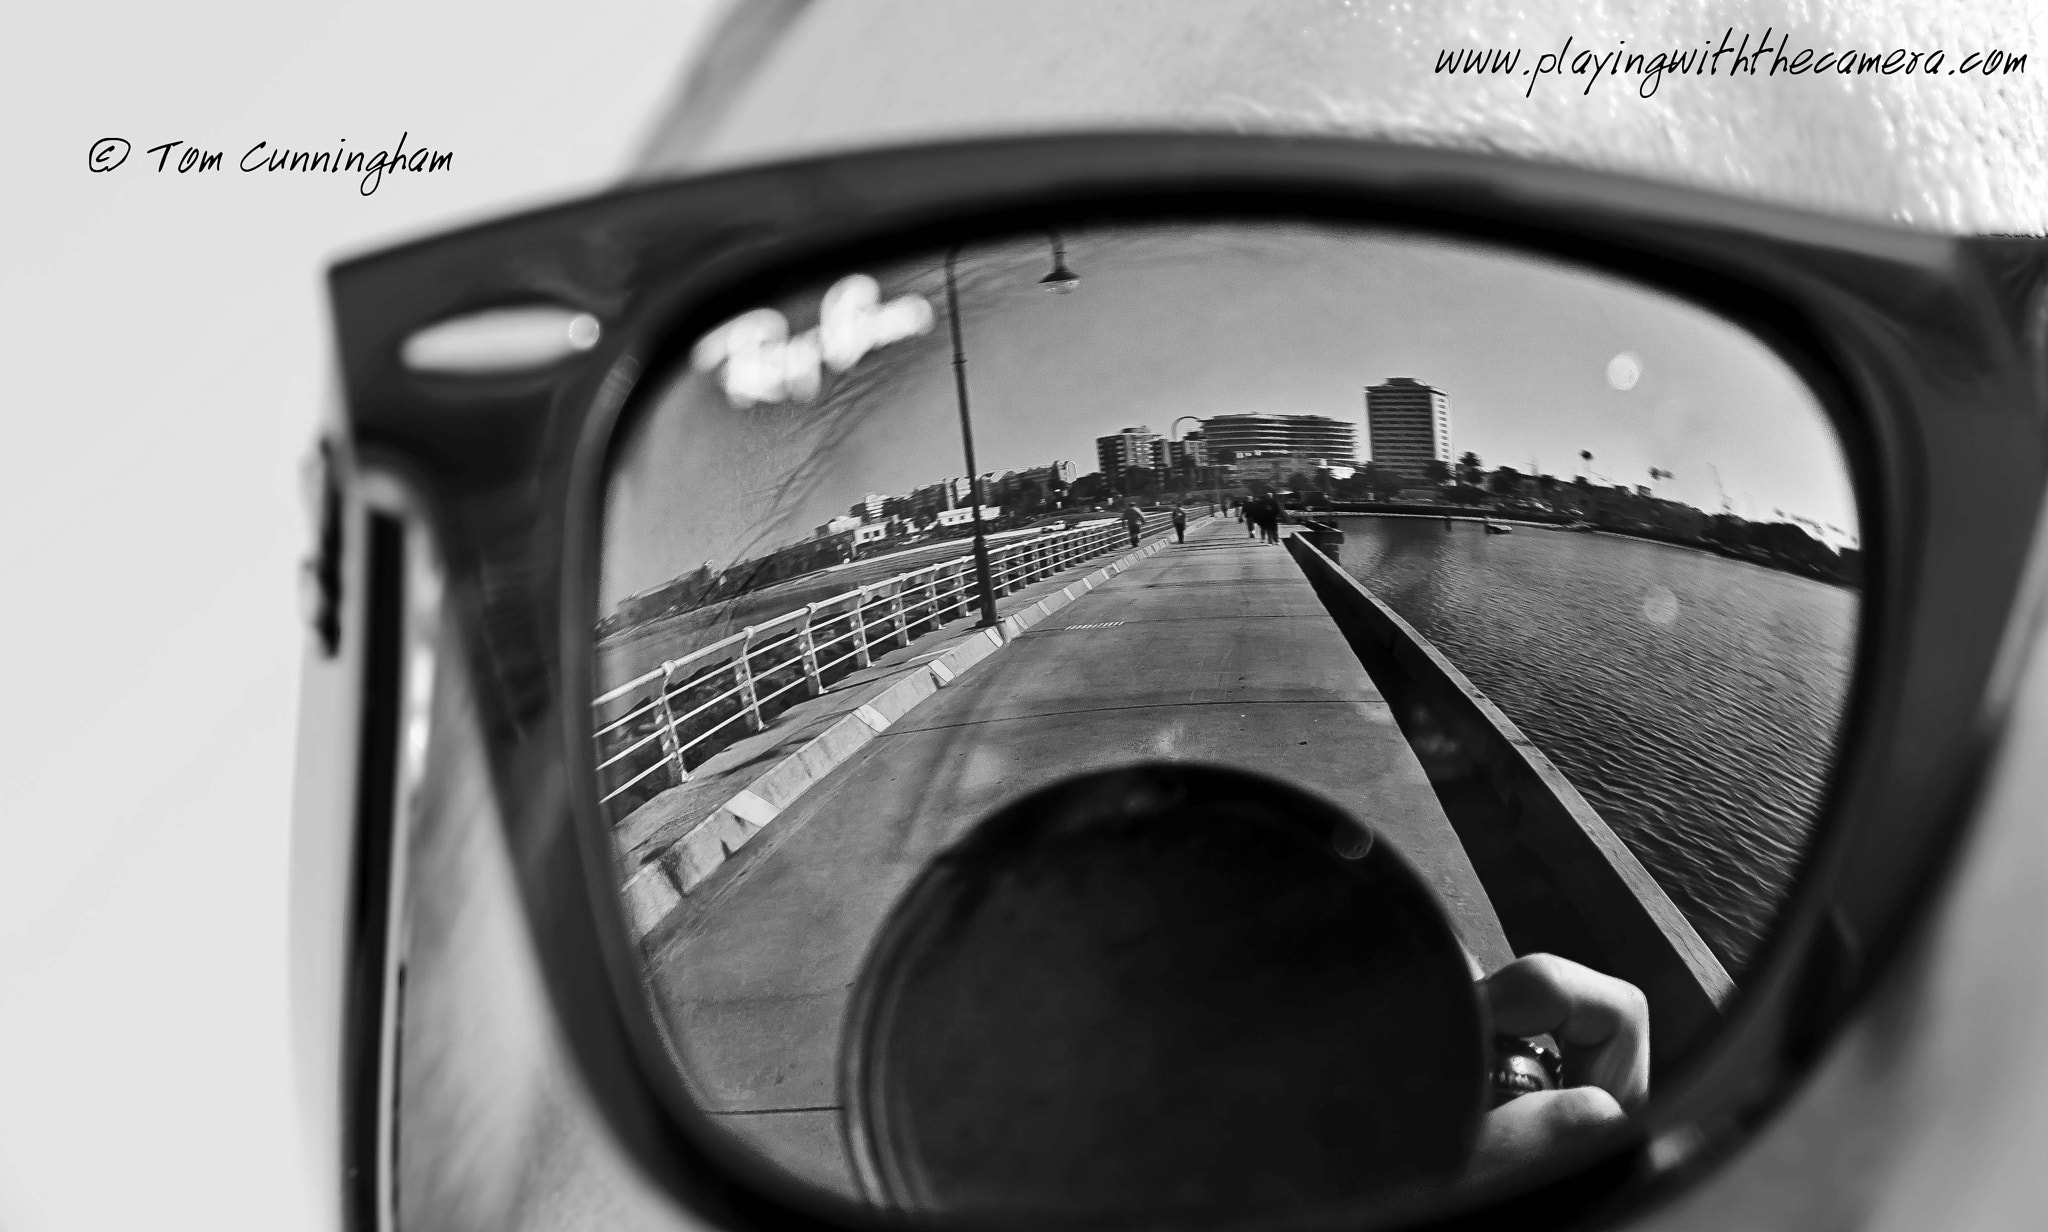 Photograph Reflection: City in Raybans by Tom Cunningham on 500px